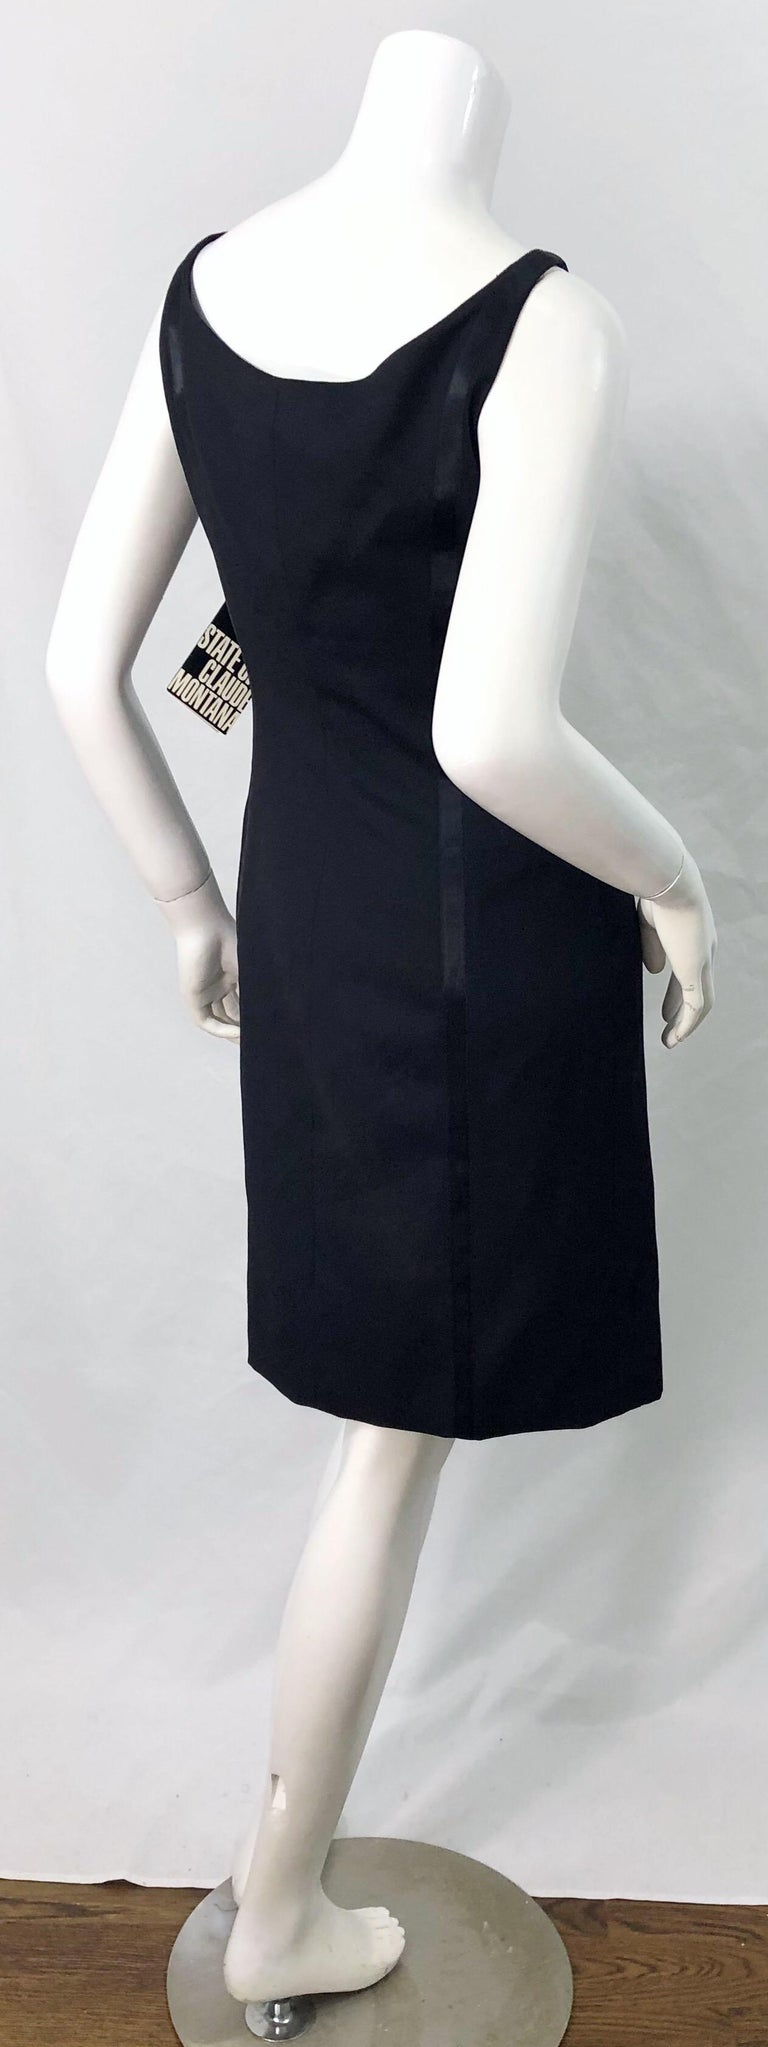 NWT 1990s Claude Montana Size 6 Vintage 90s Sleeveless Little Black Dress  For Sale 1